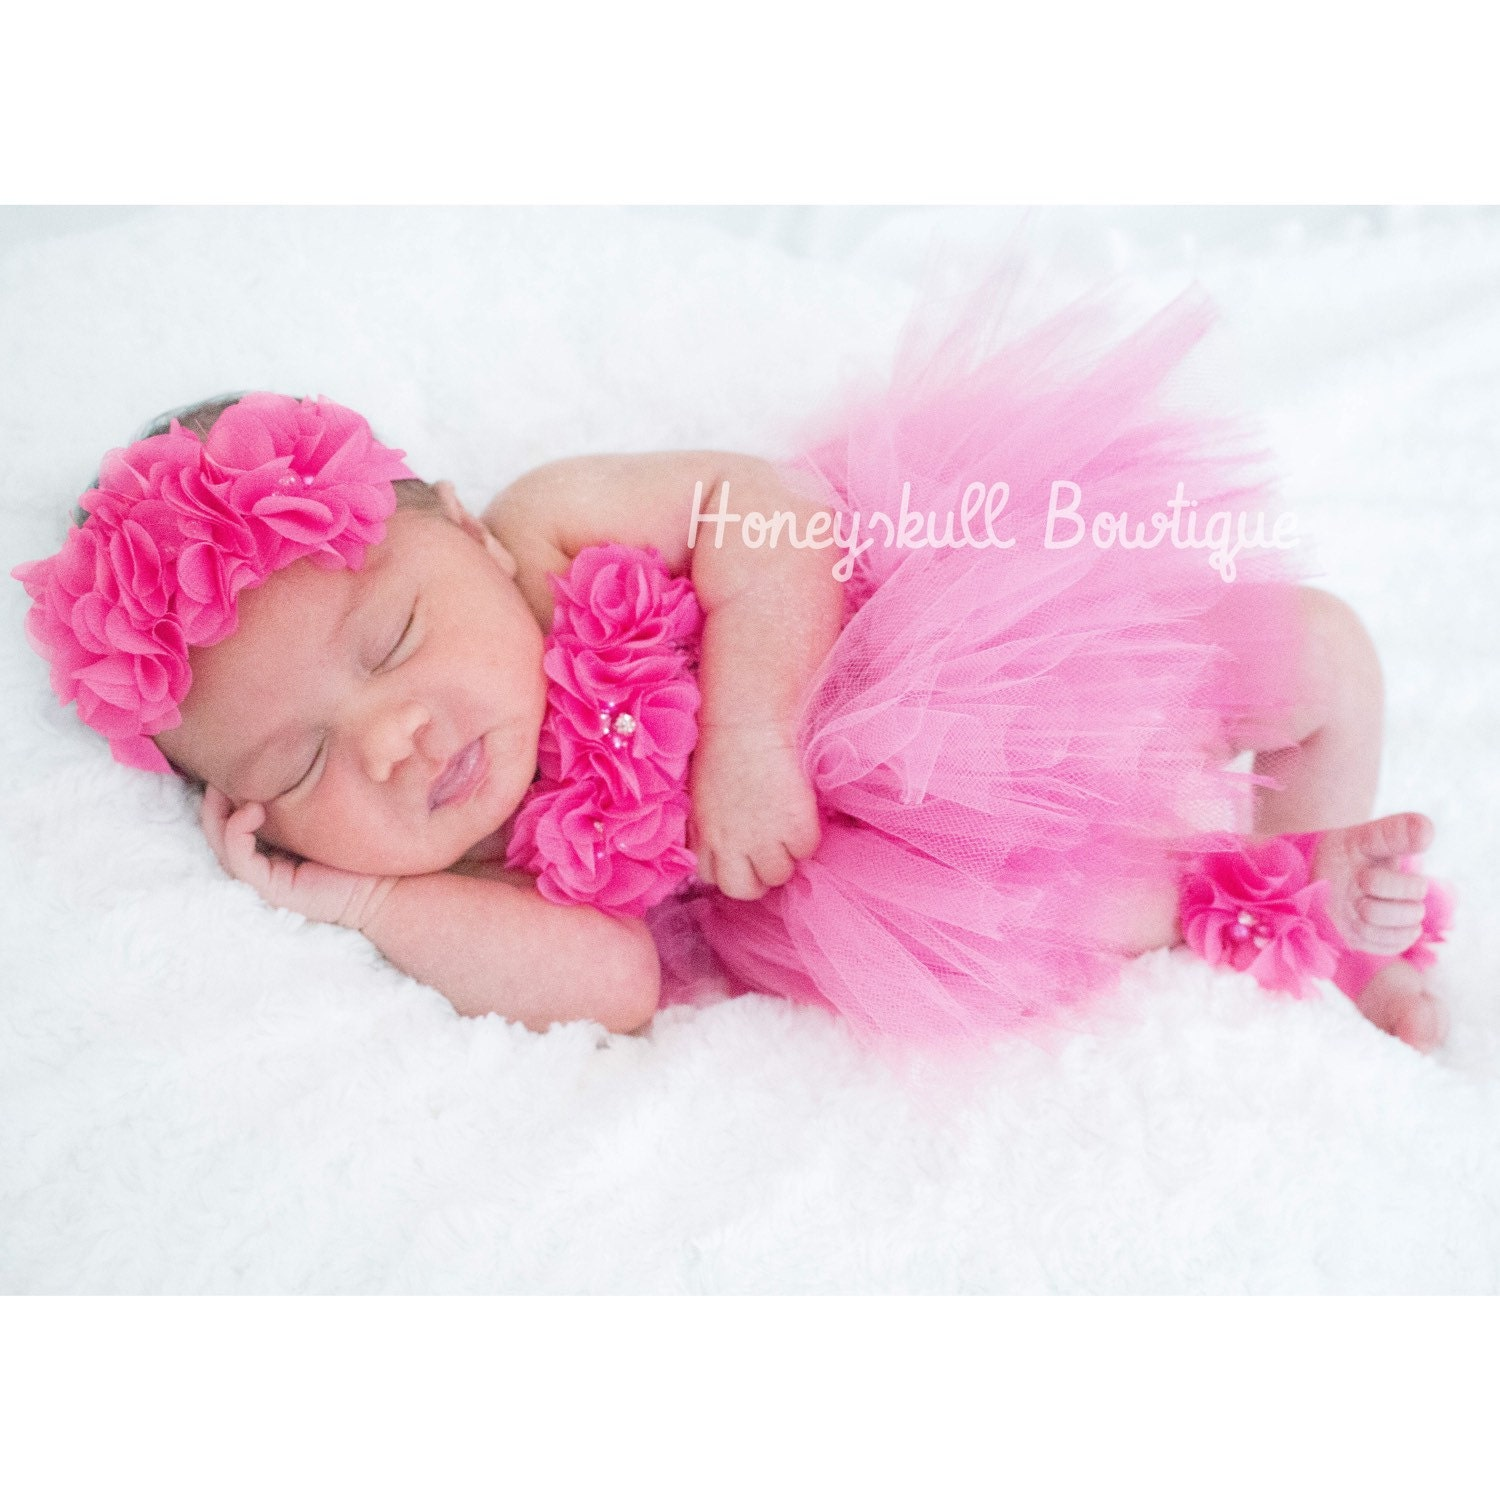 Hot Pink Baby Tutu Dress Newborn 18 months Prop Tutu Set